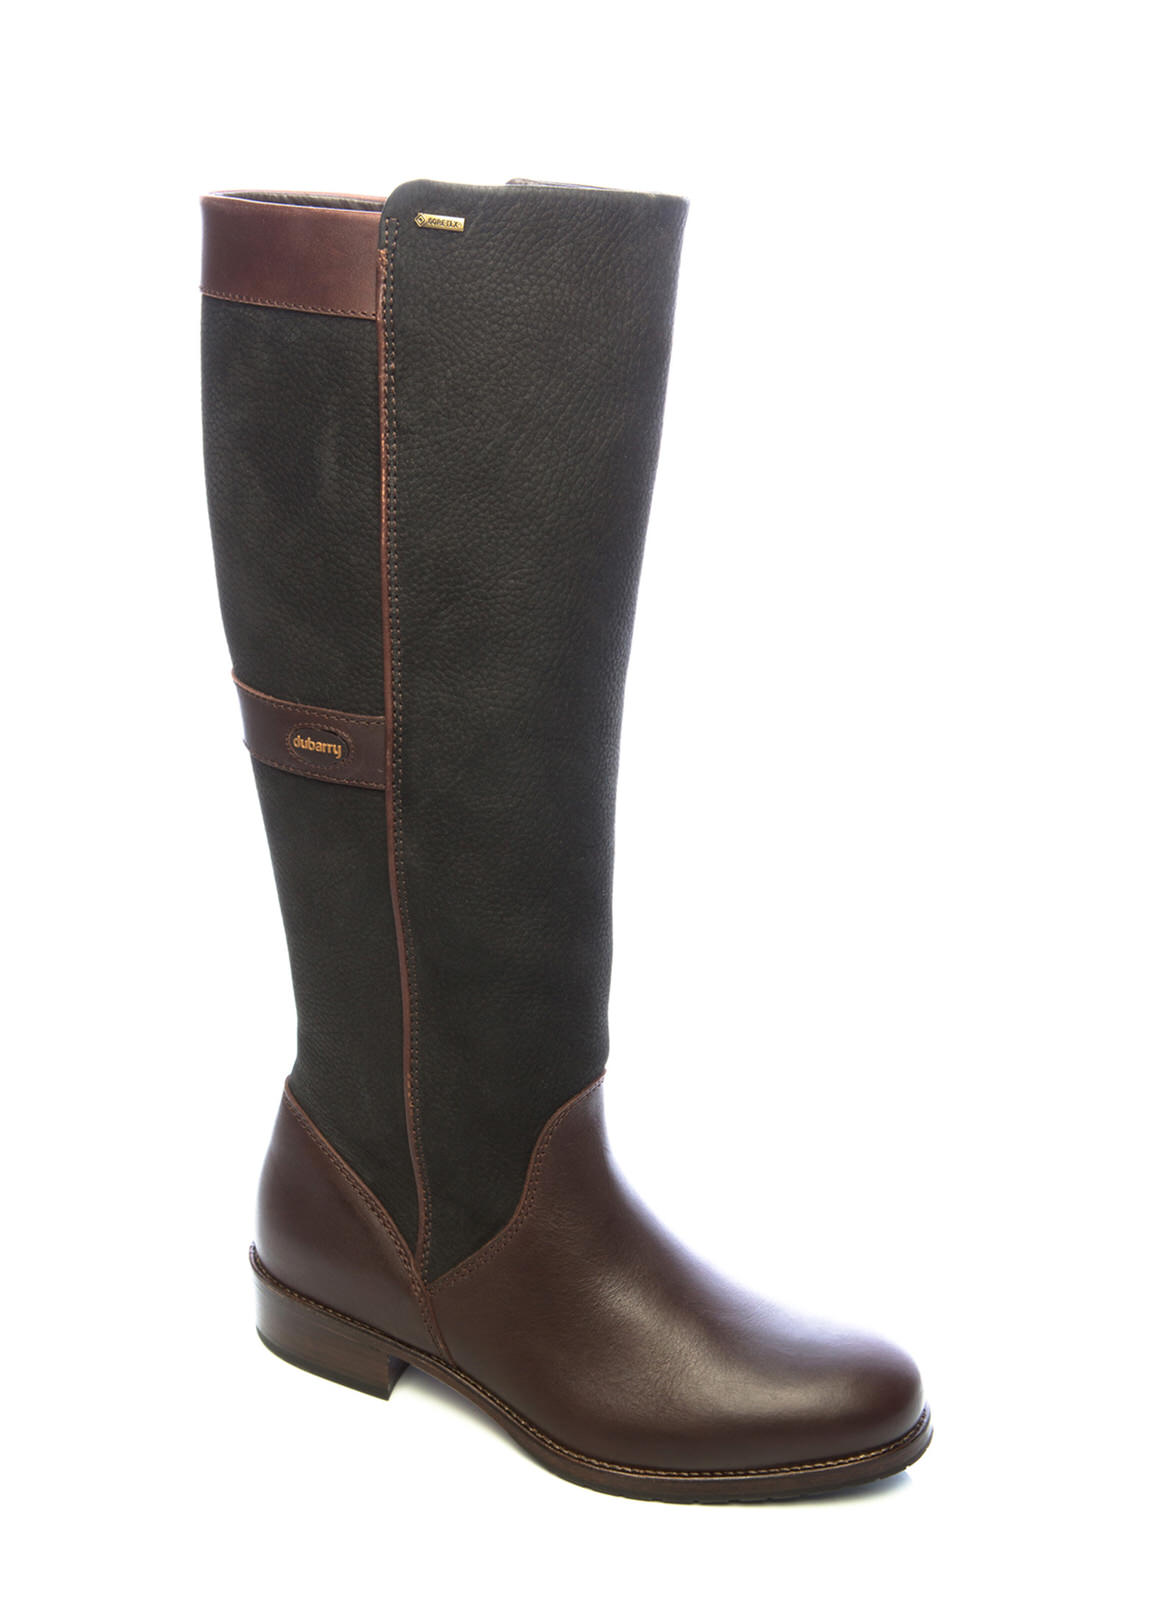 Dubarry_ Fermoy Boot - Black/Brown_Image_1